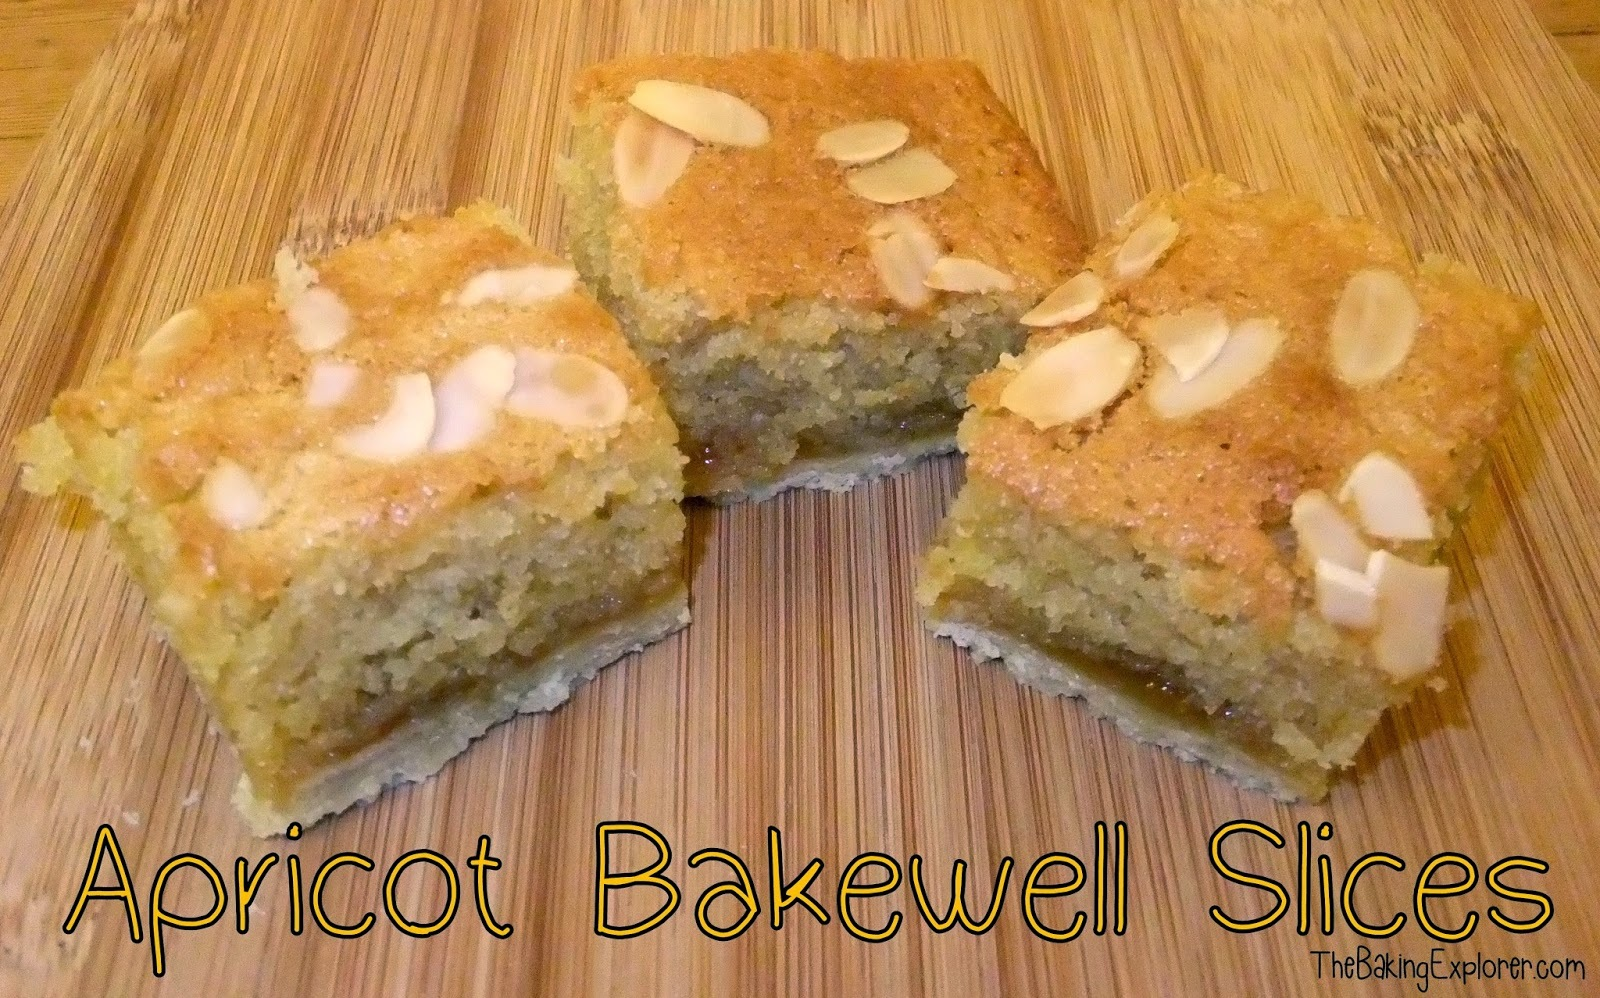 Apricot Bakewell Slices